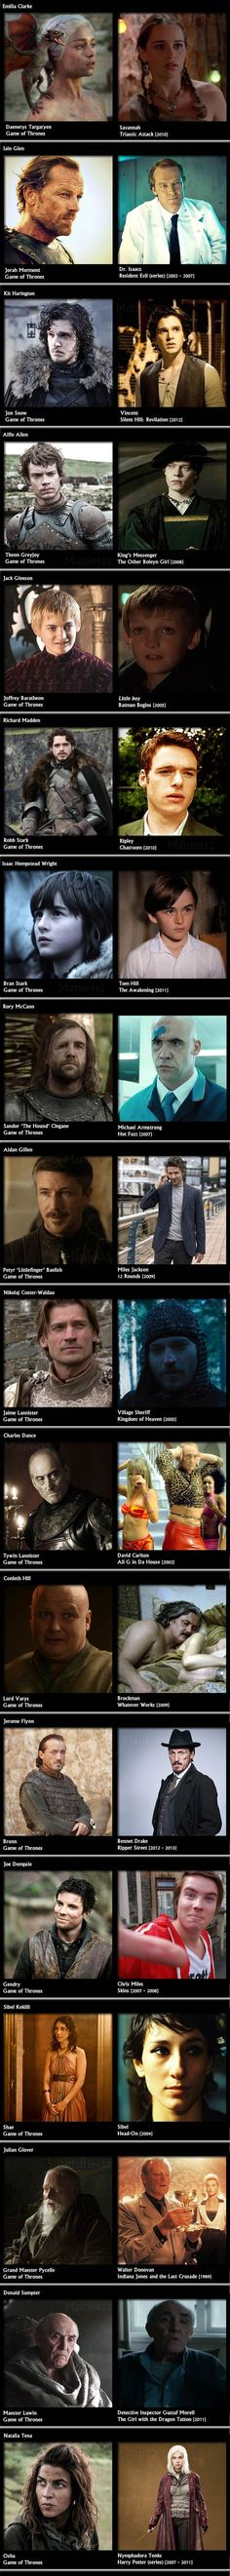 They exist outside of Westeros?!?  via: http://www.clustermagazine.it/2013/06/dove-abbiamo-visto-i-personaggi-di-game-of-thrones-precedentemente/